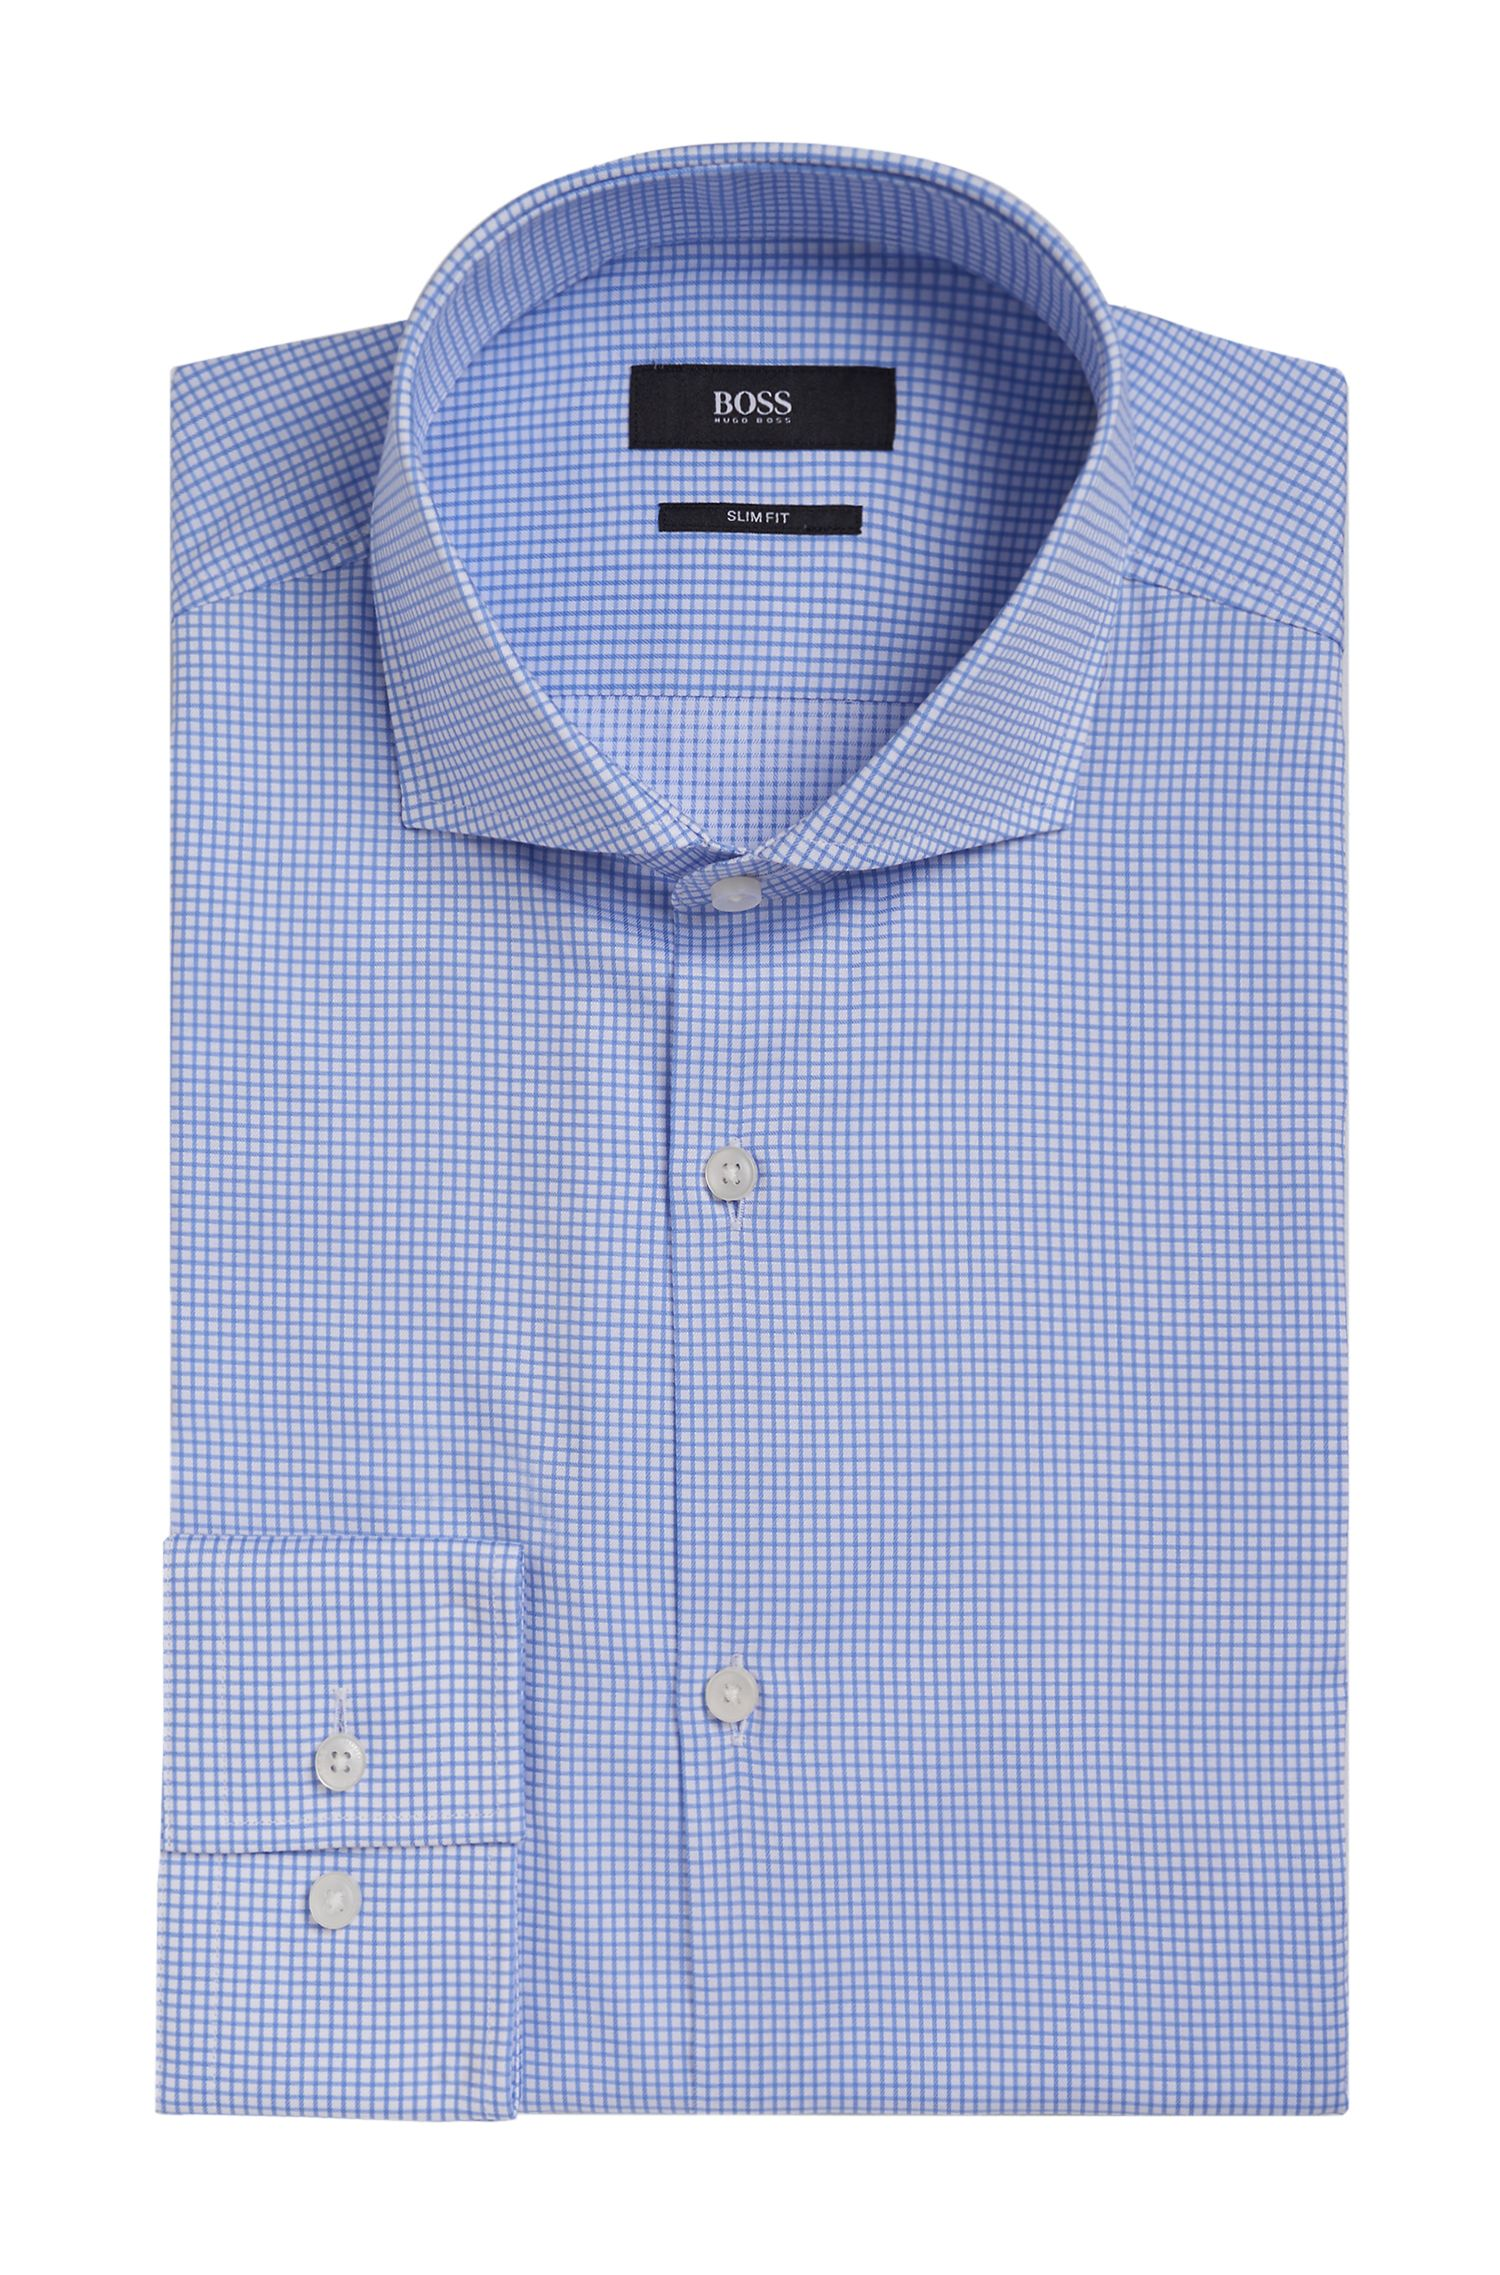 Grid Check Cotton Dress Shirt, Slim Fit | Jason